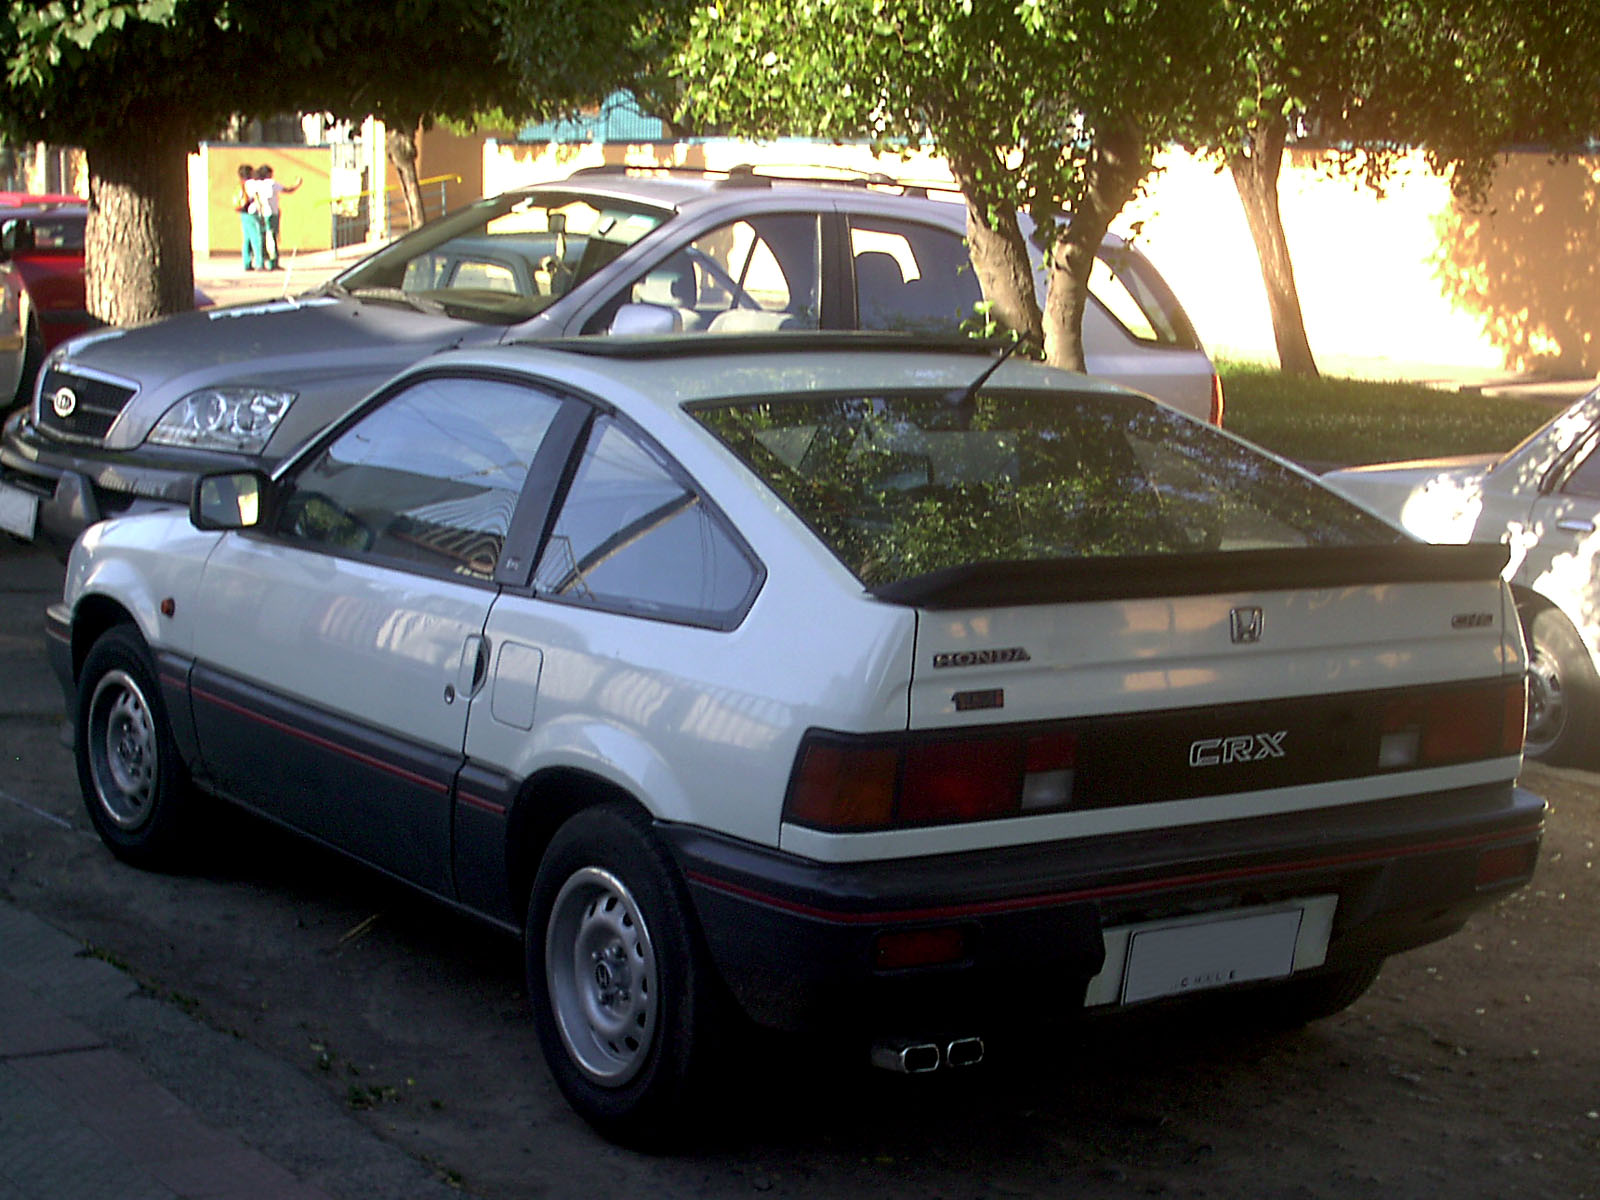 1990 Honda Civic CRX HF - 2dr Hatchback 1.5L Manual